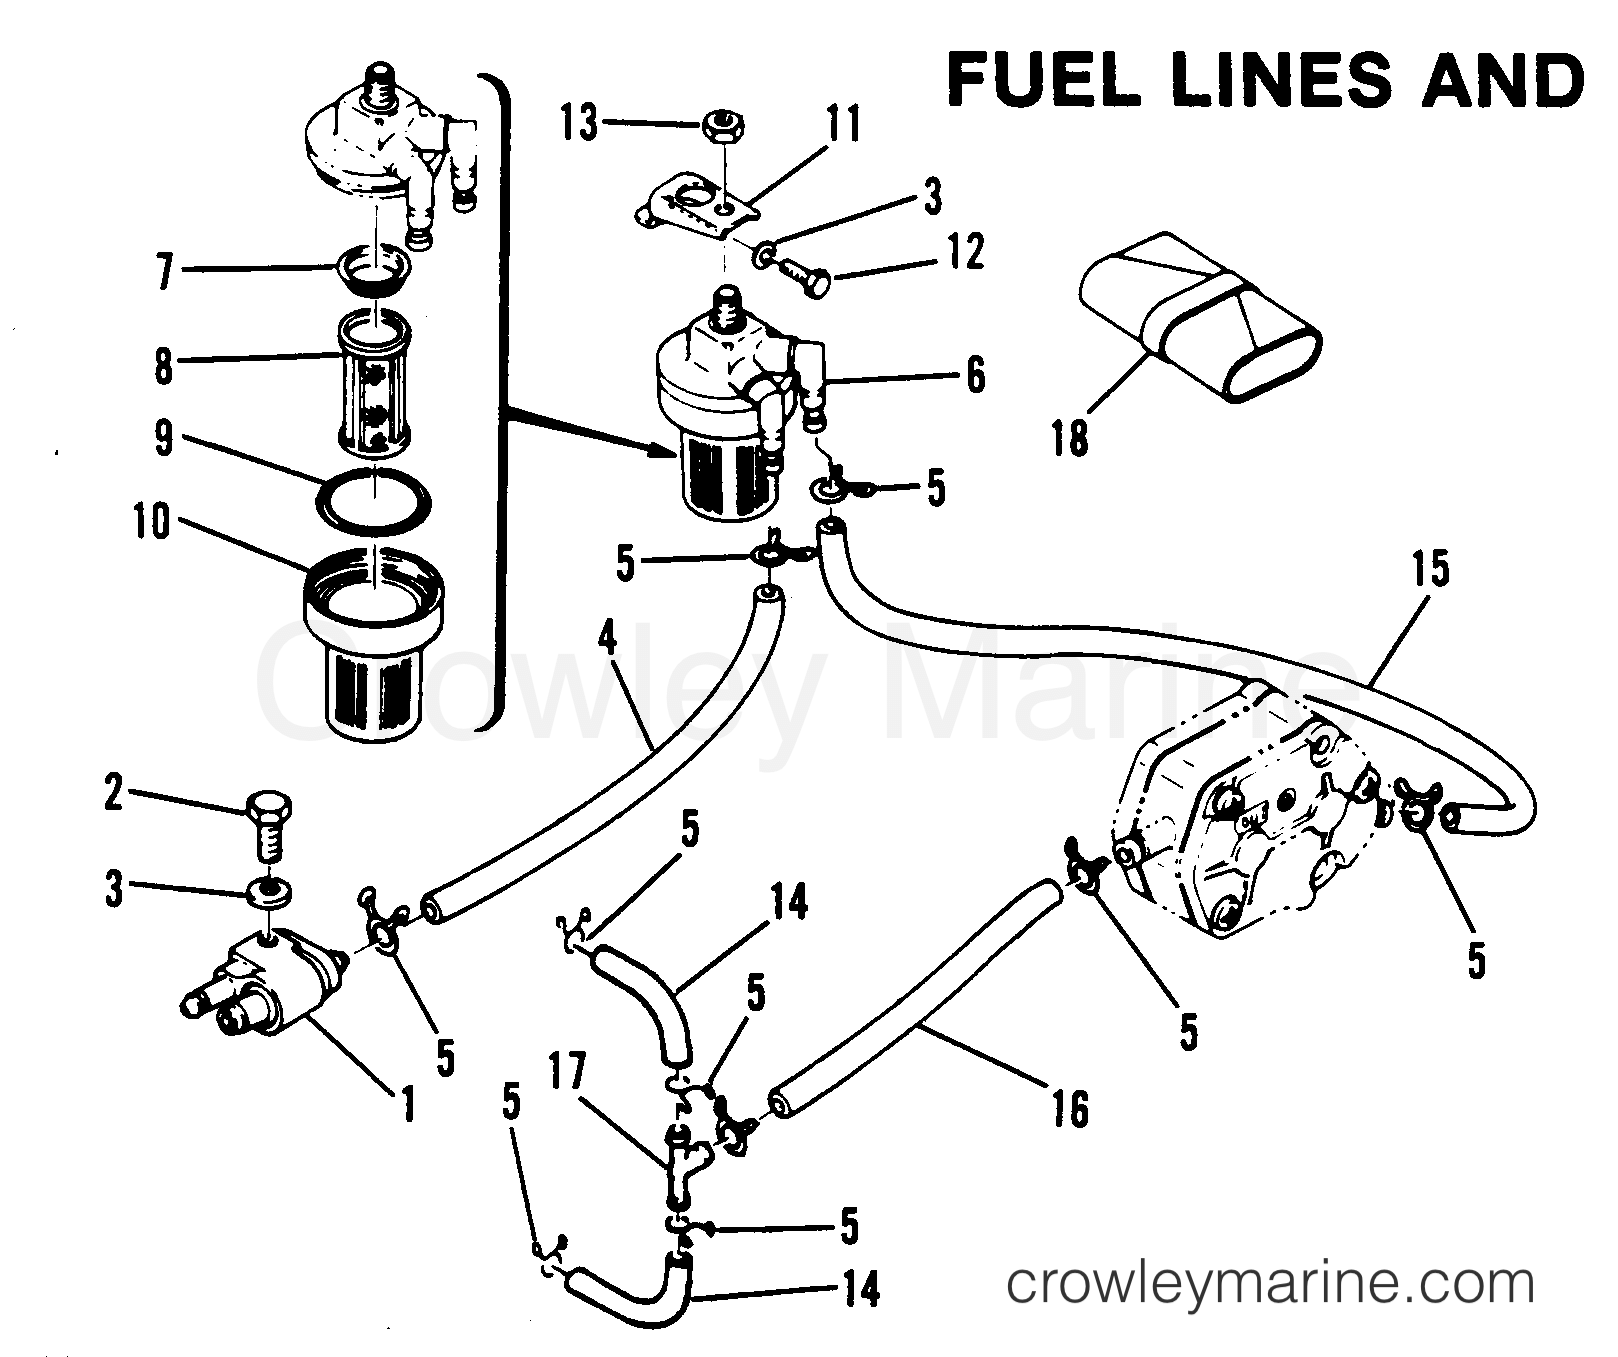 1982 Mariner Outboard 40 [EL] - 7040522 - FUEL LINES AND FILTER section